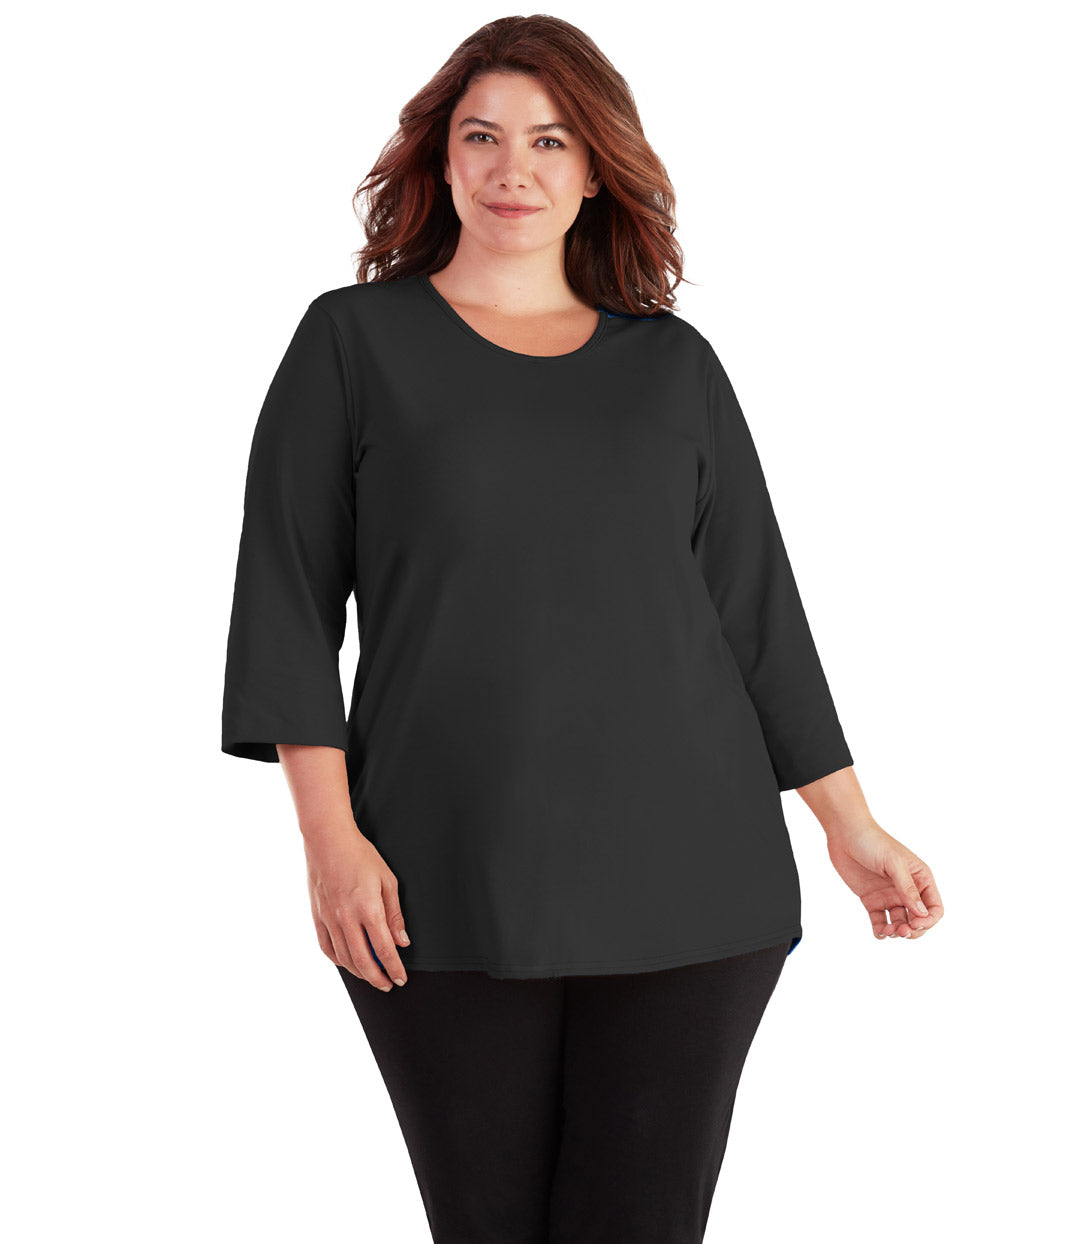 plus size yoga clothes black top